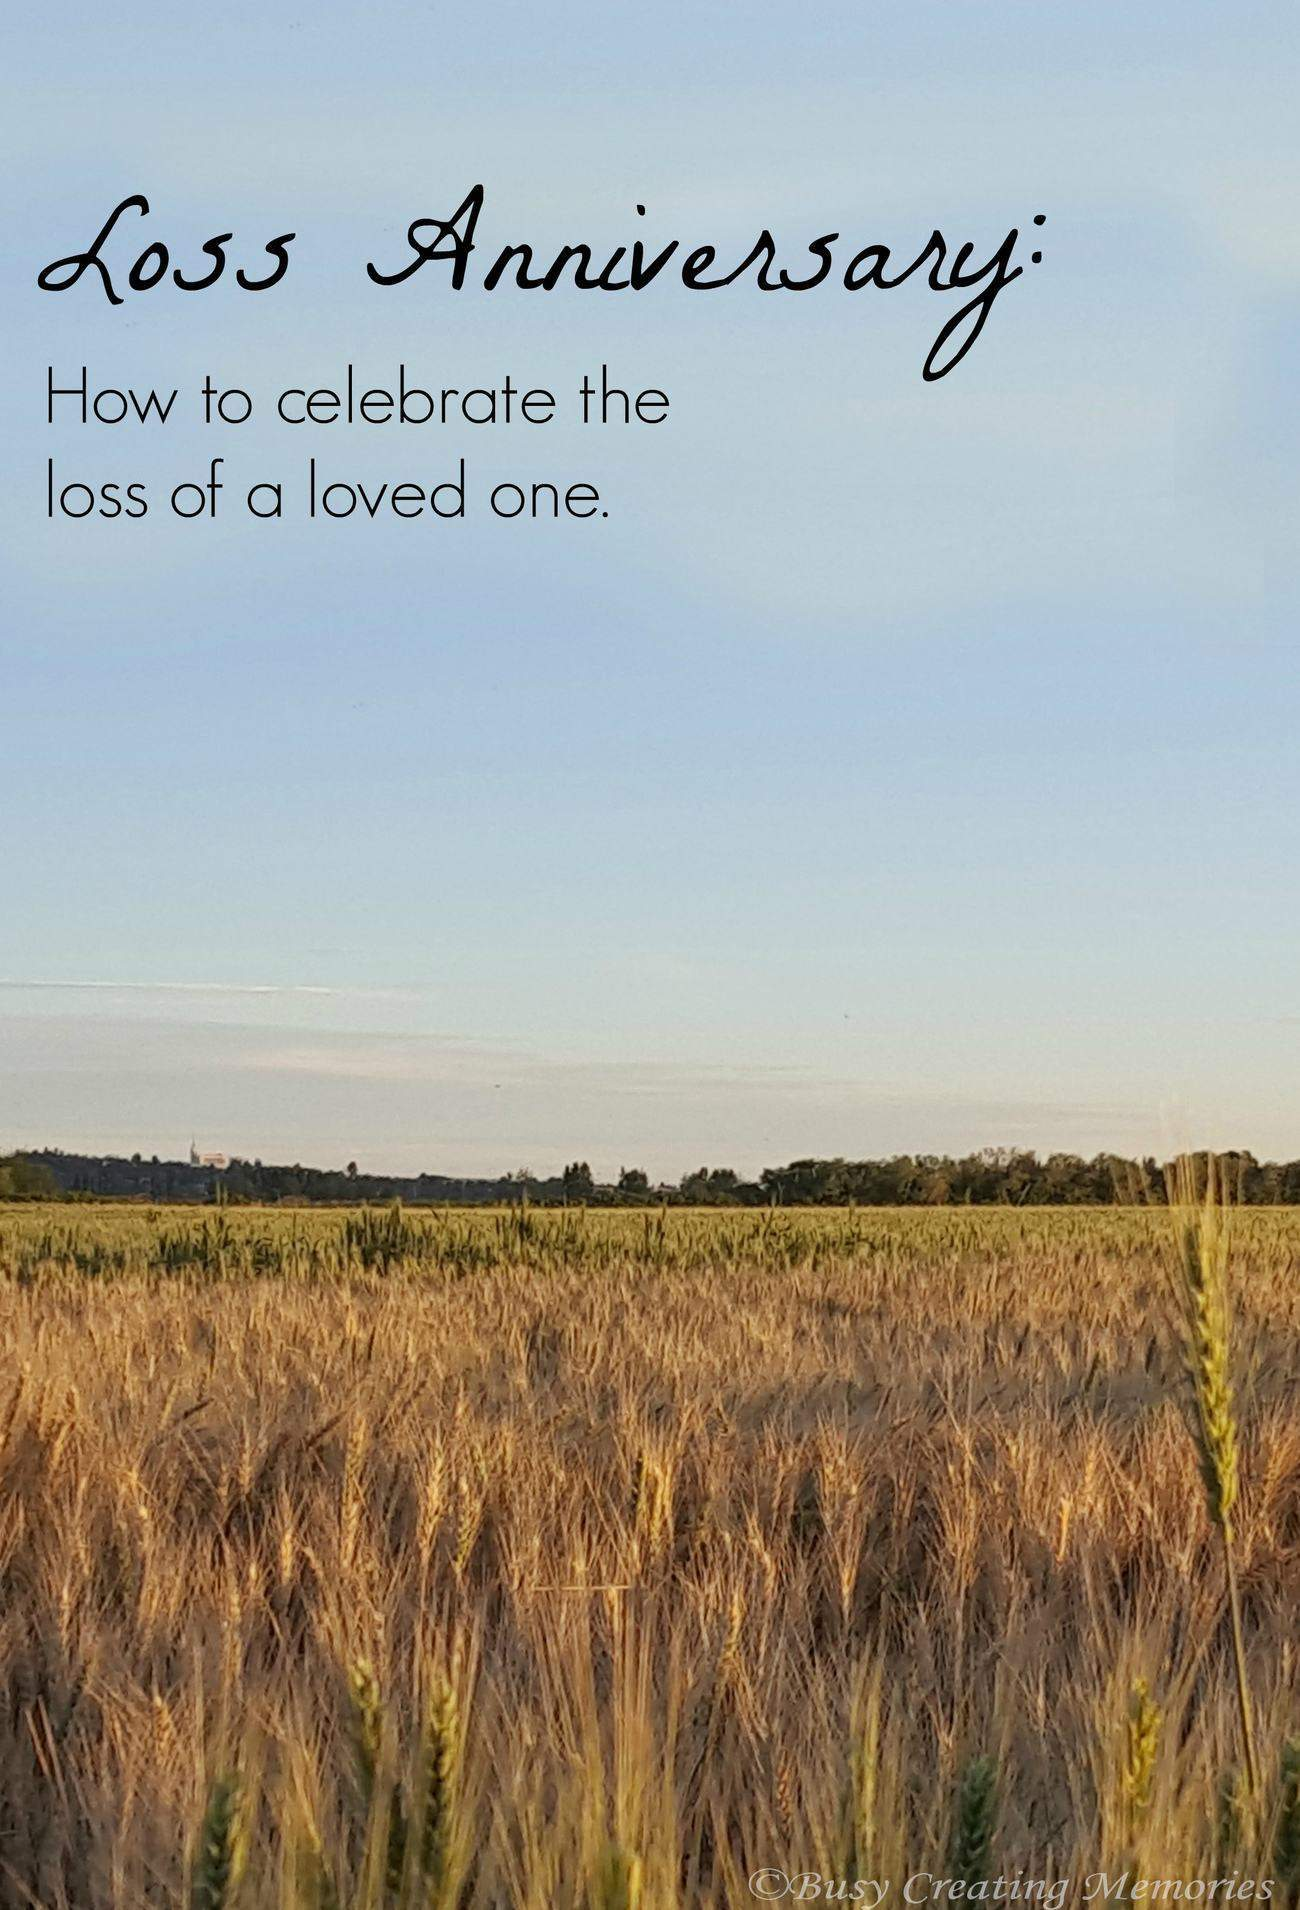 Loss Anniversary - How to celebrate the anniversary of losing a loved one